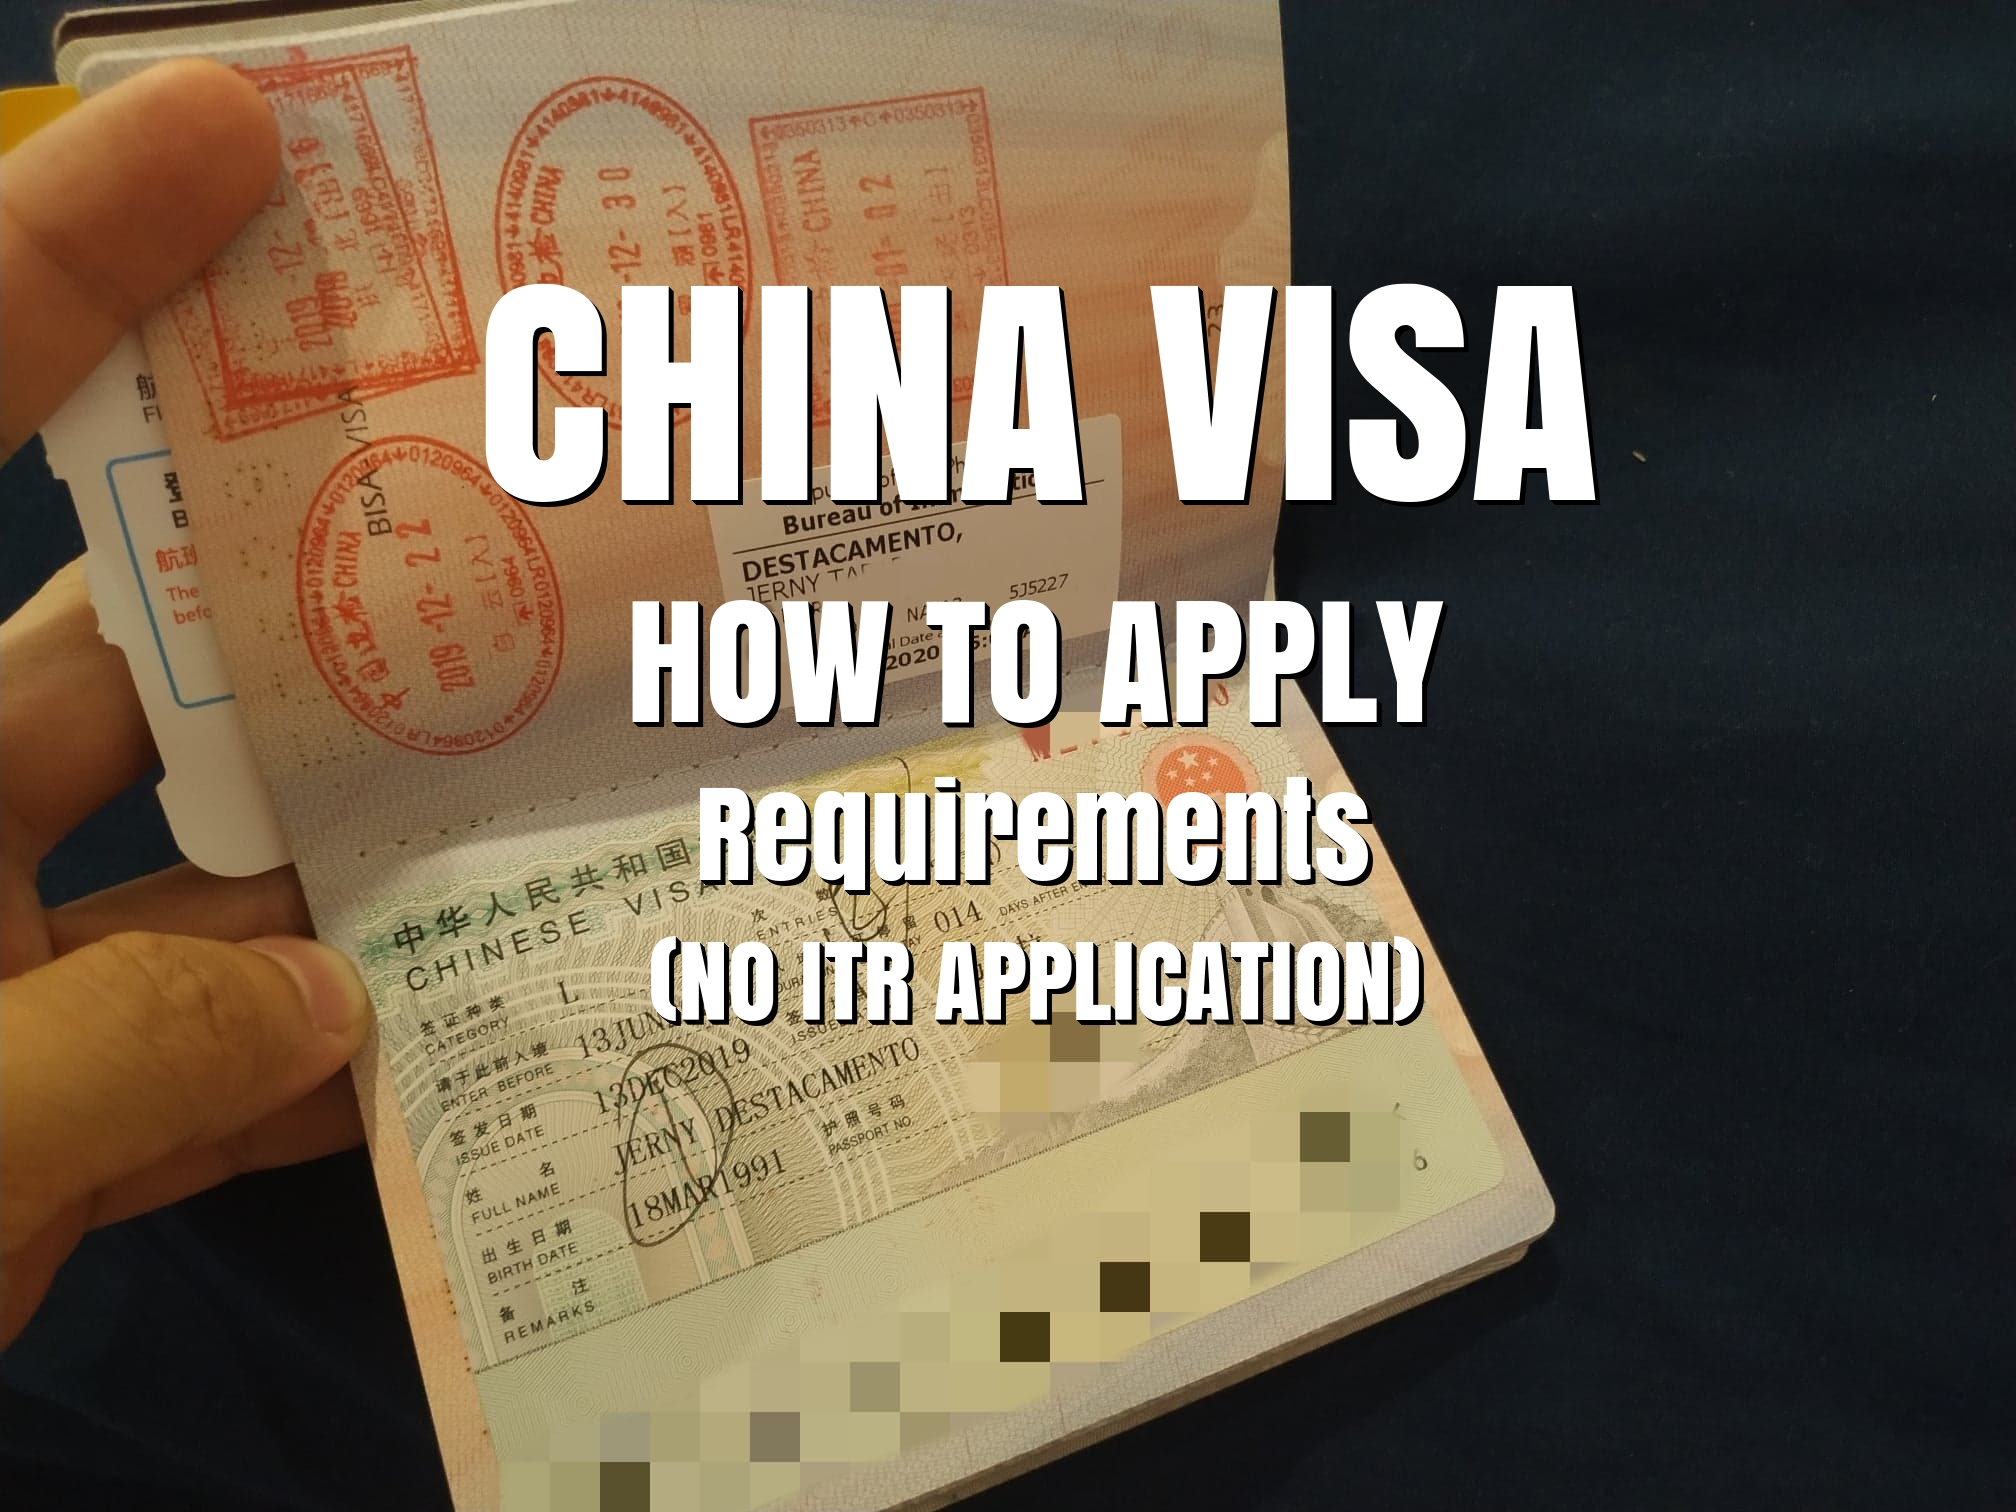 How To Apply For China Visa With No Itr Requirements The Jerny Travel And Inspirations